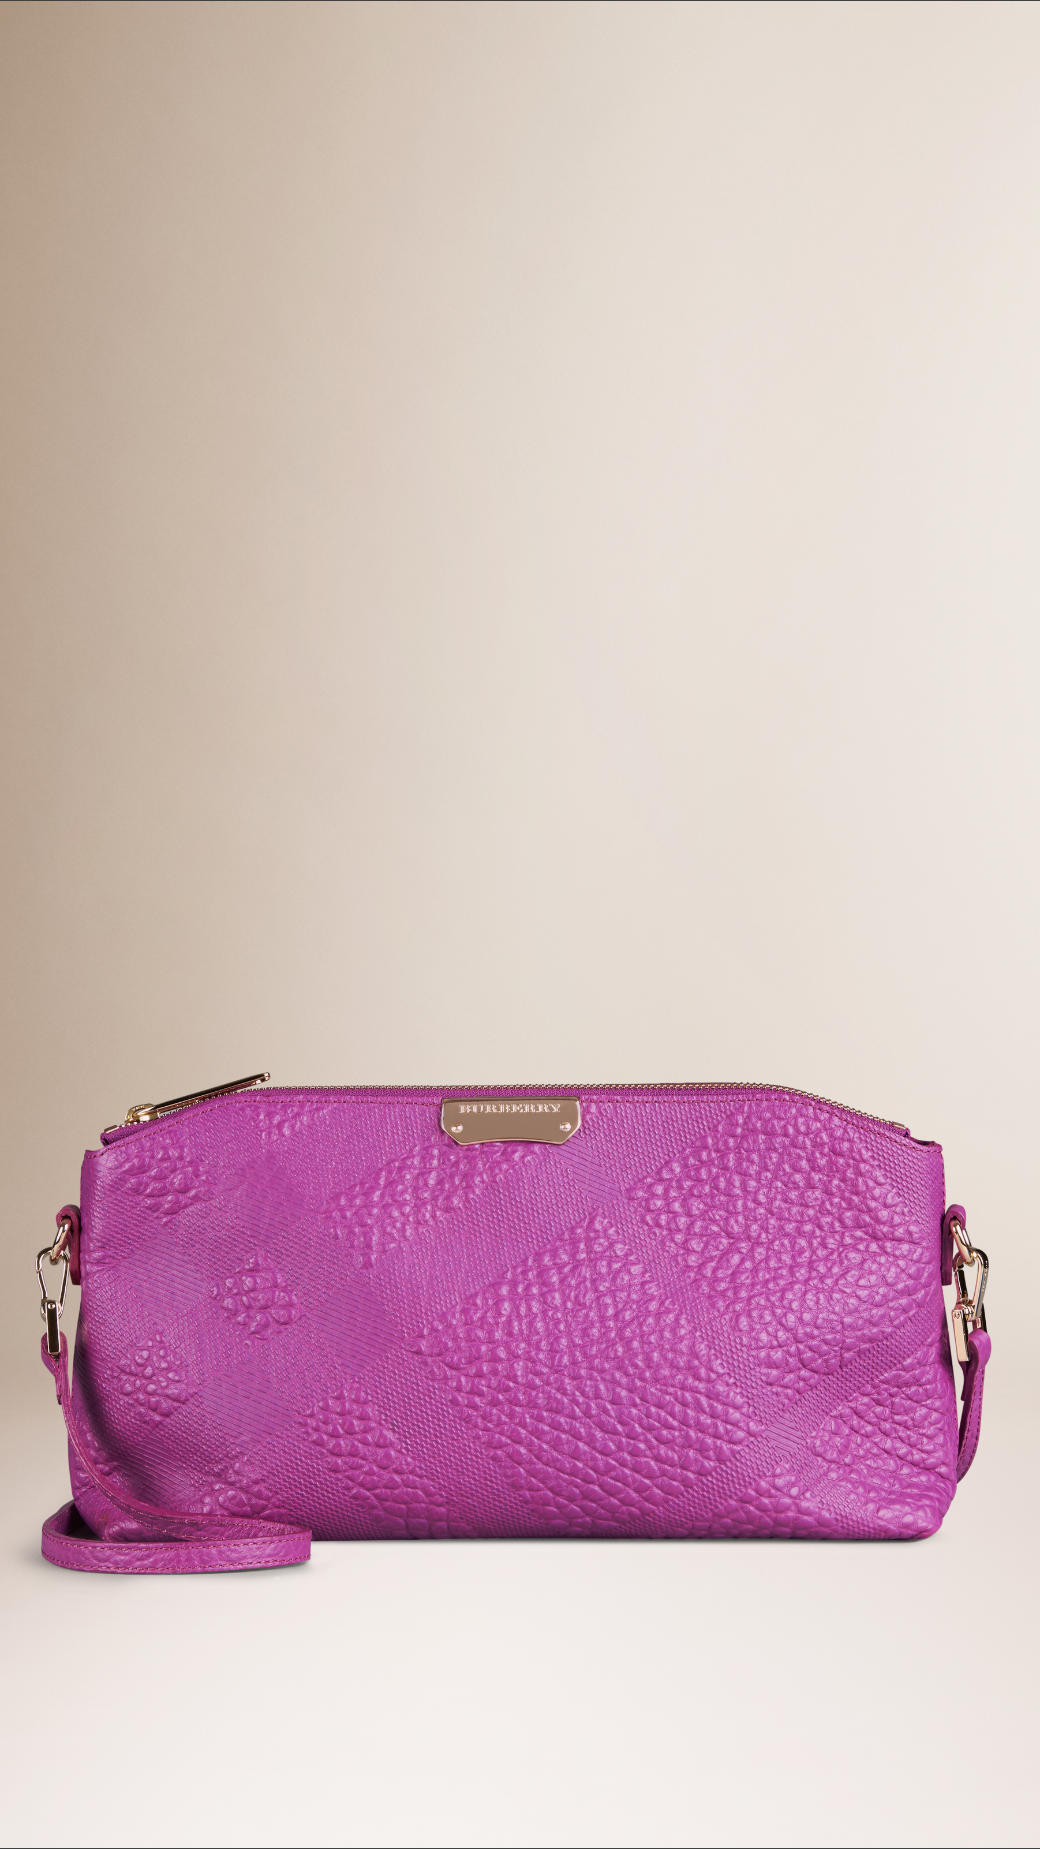 b08d9c3af777 Lyst - Burberry Small Embossed Check Leather Clutch Bag in Purple